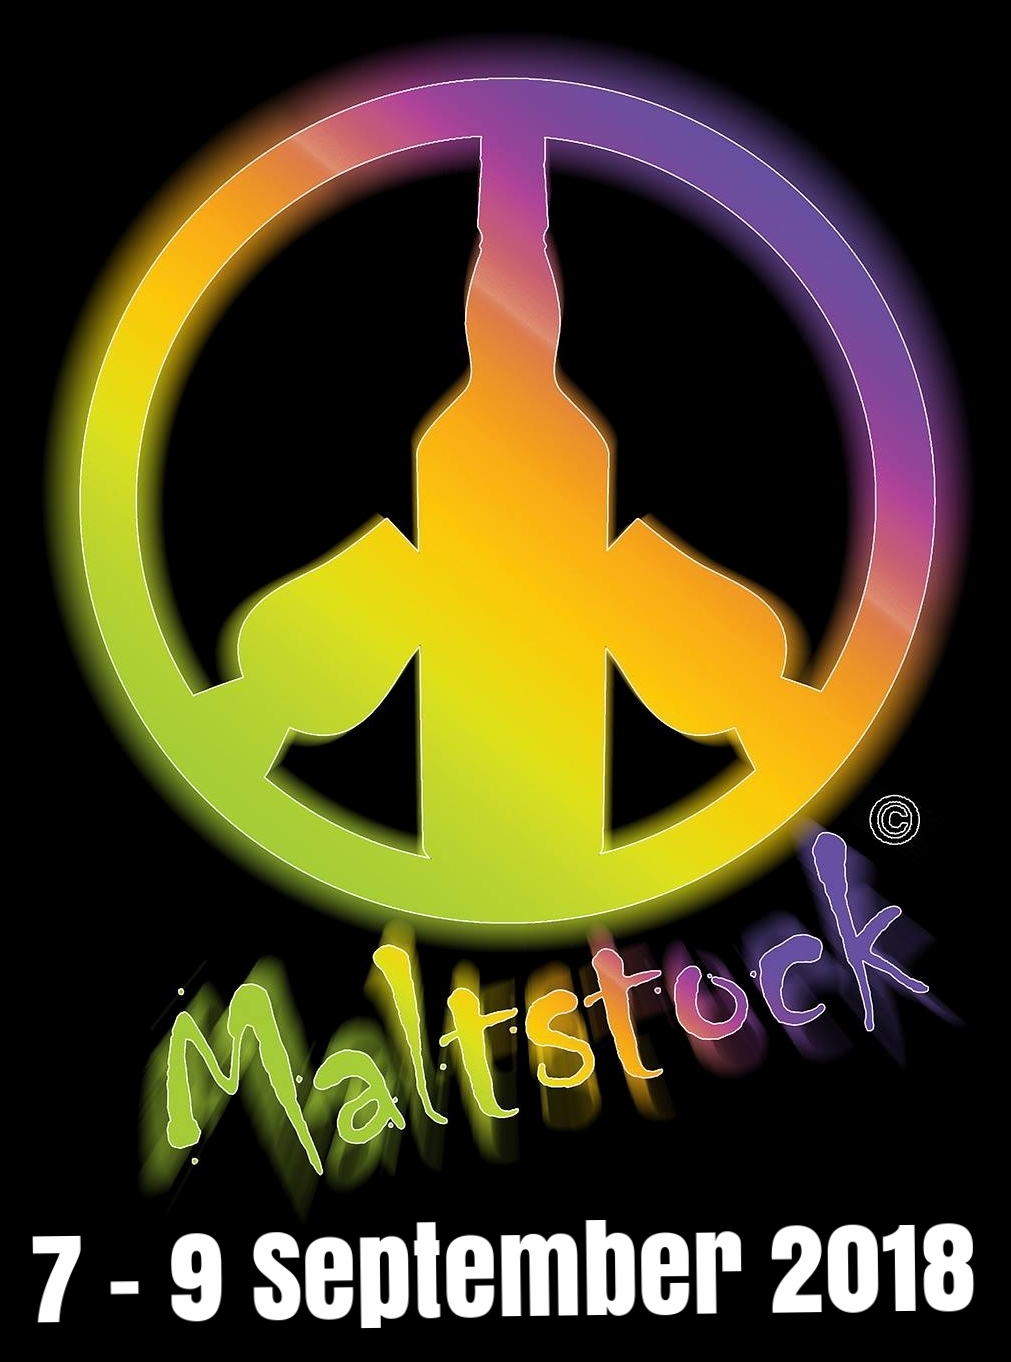 Maltstock, the Relaxed Whisky Weekend